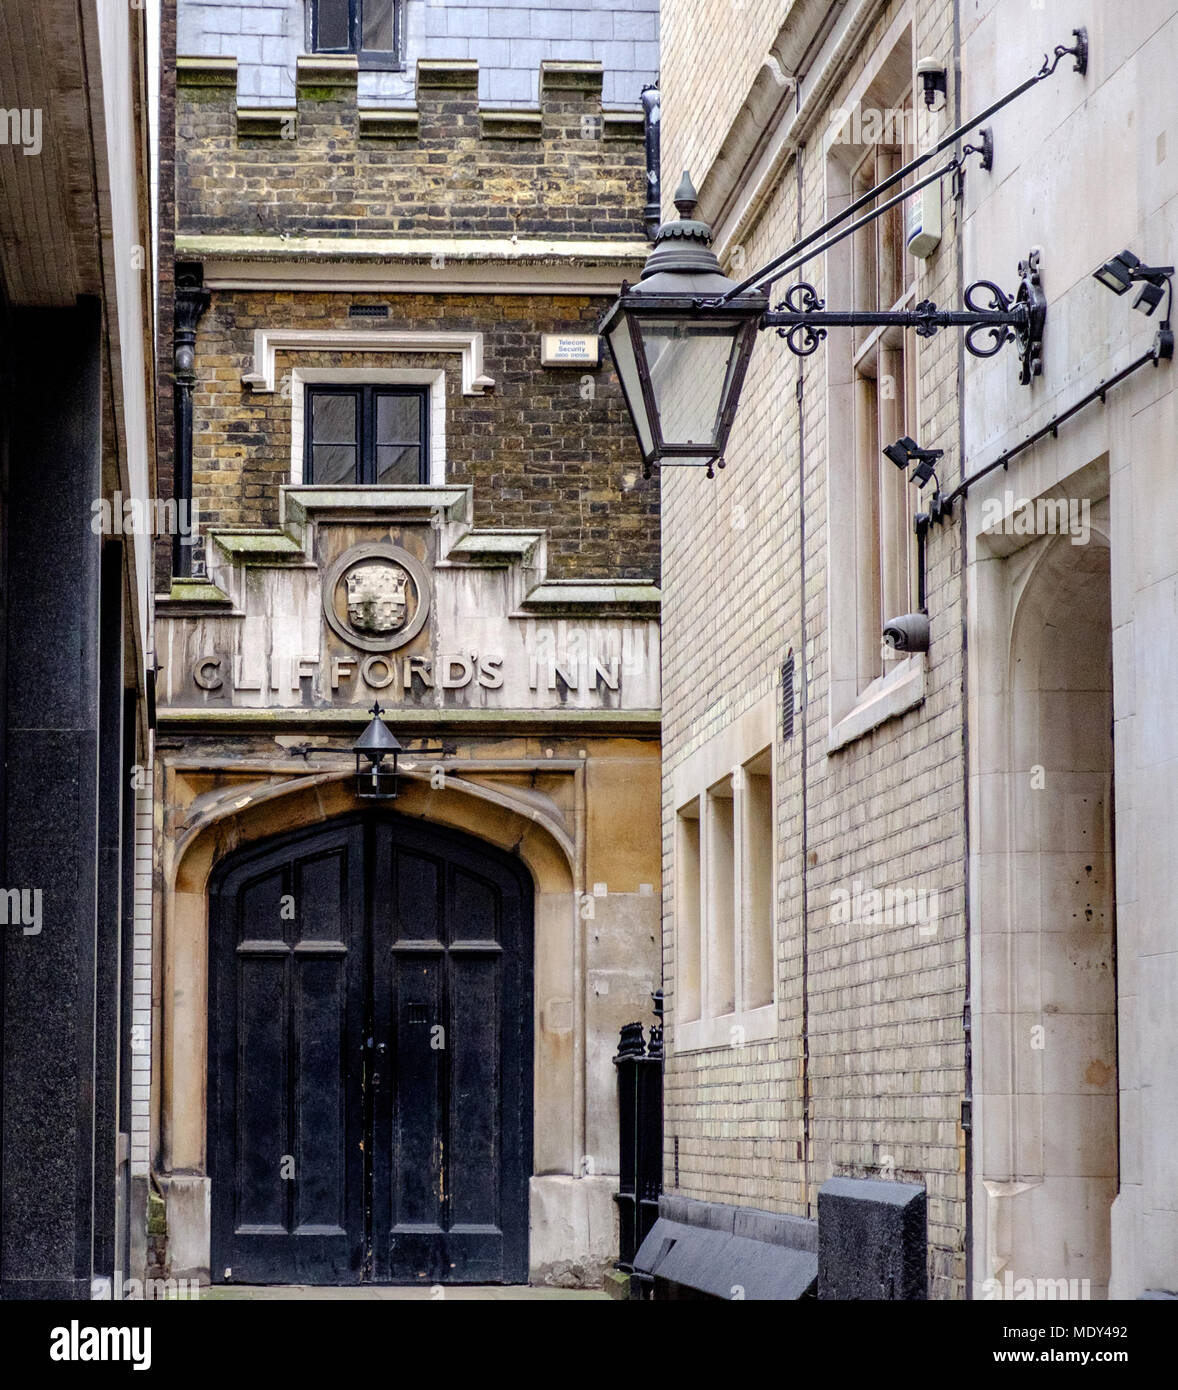 Old wrought iron street light extended from building in front of Clifford's Inn, in the City of London next to Chancery Lane. - Stock Image